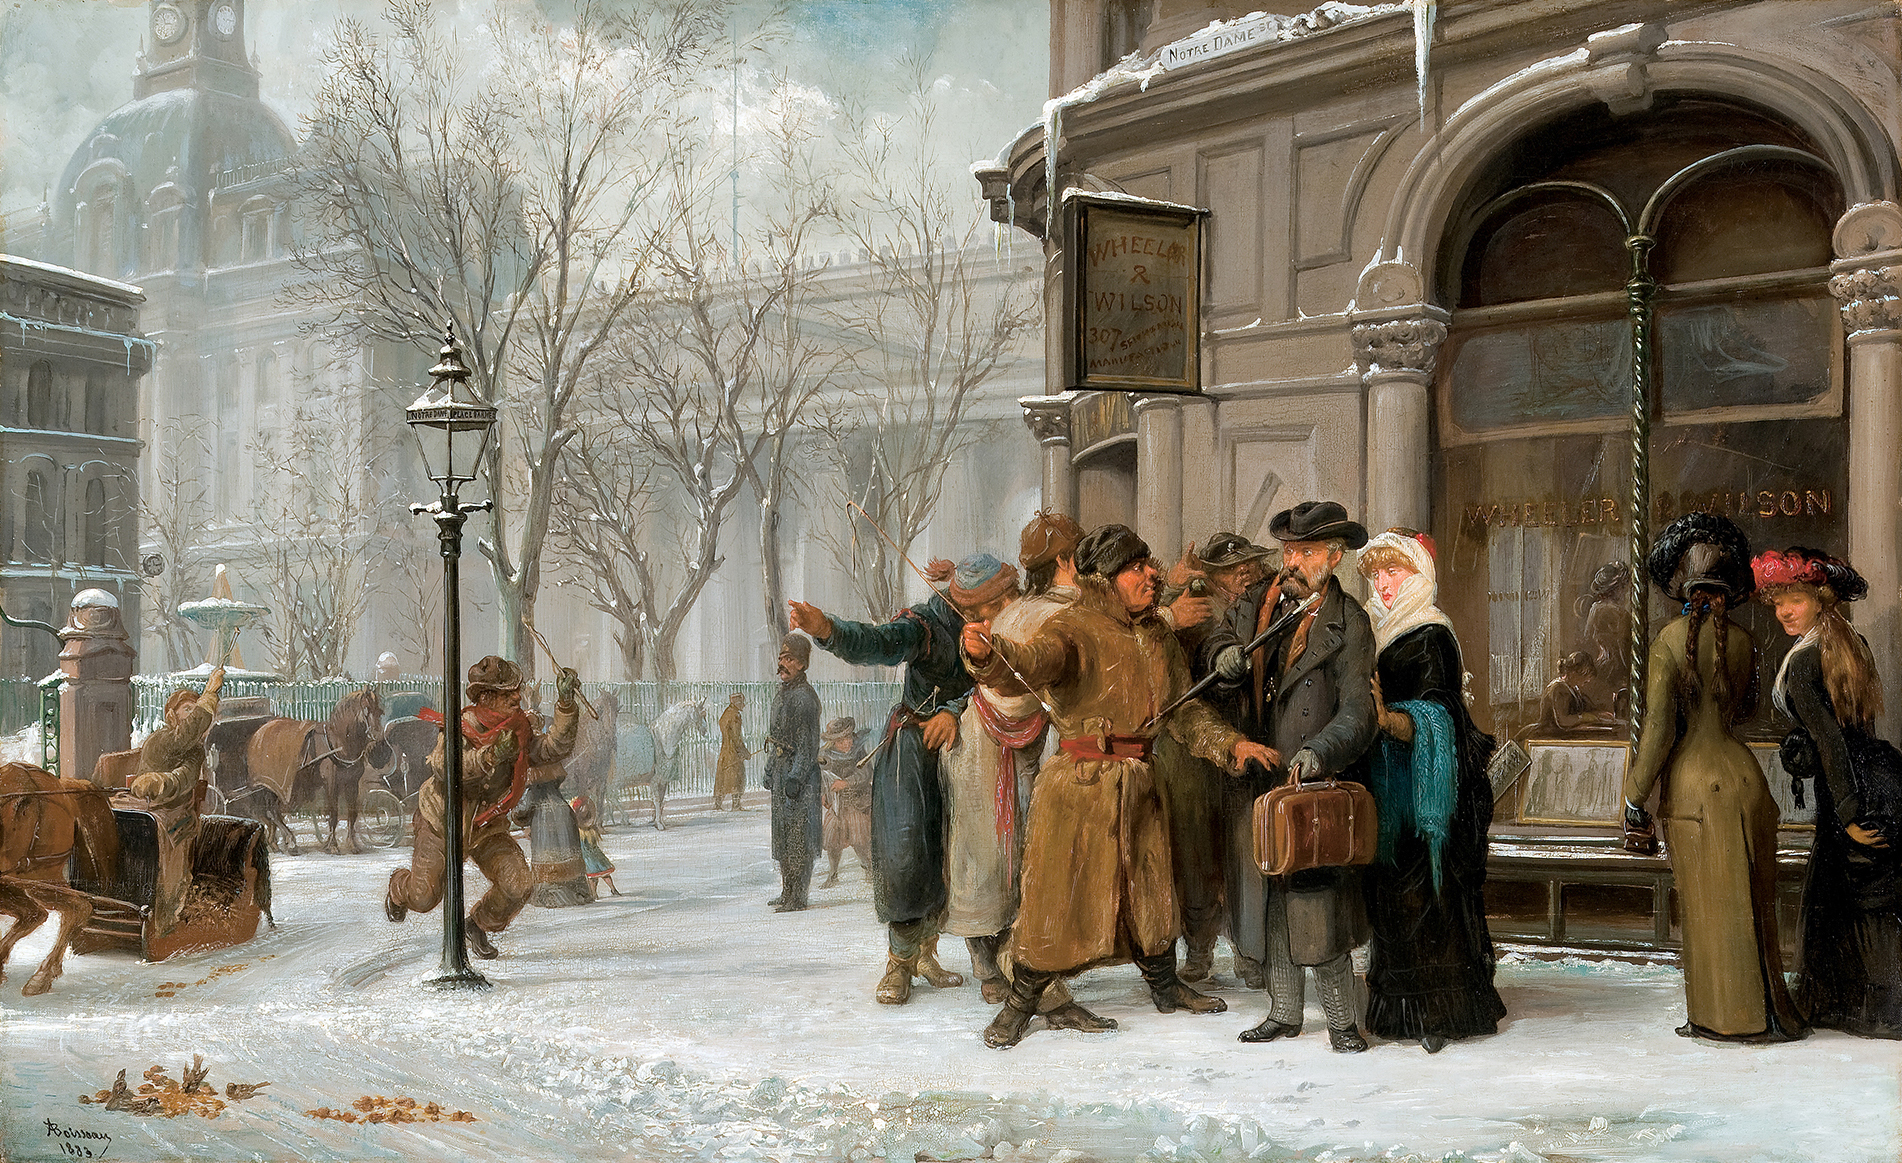 This painting depicts a winter scene set on the edge of a public square. In the foreground, three fur-clad men are gesturing in front of a man and a woman. Other figures are going about their business in the background.